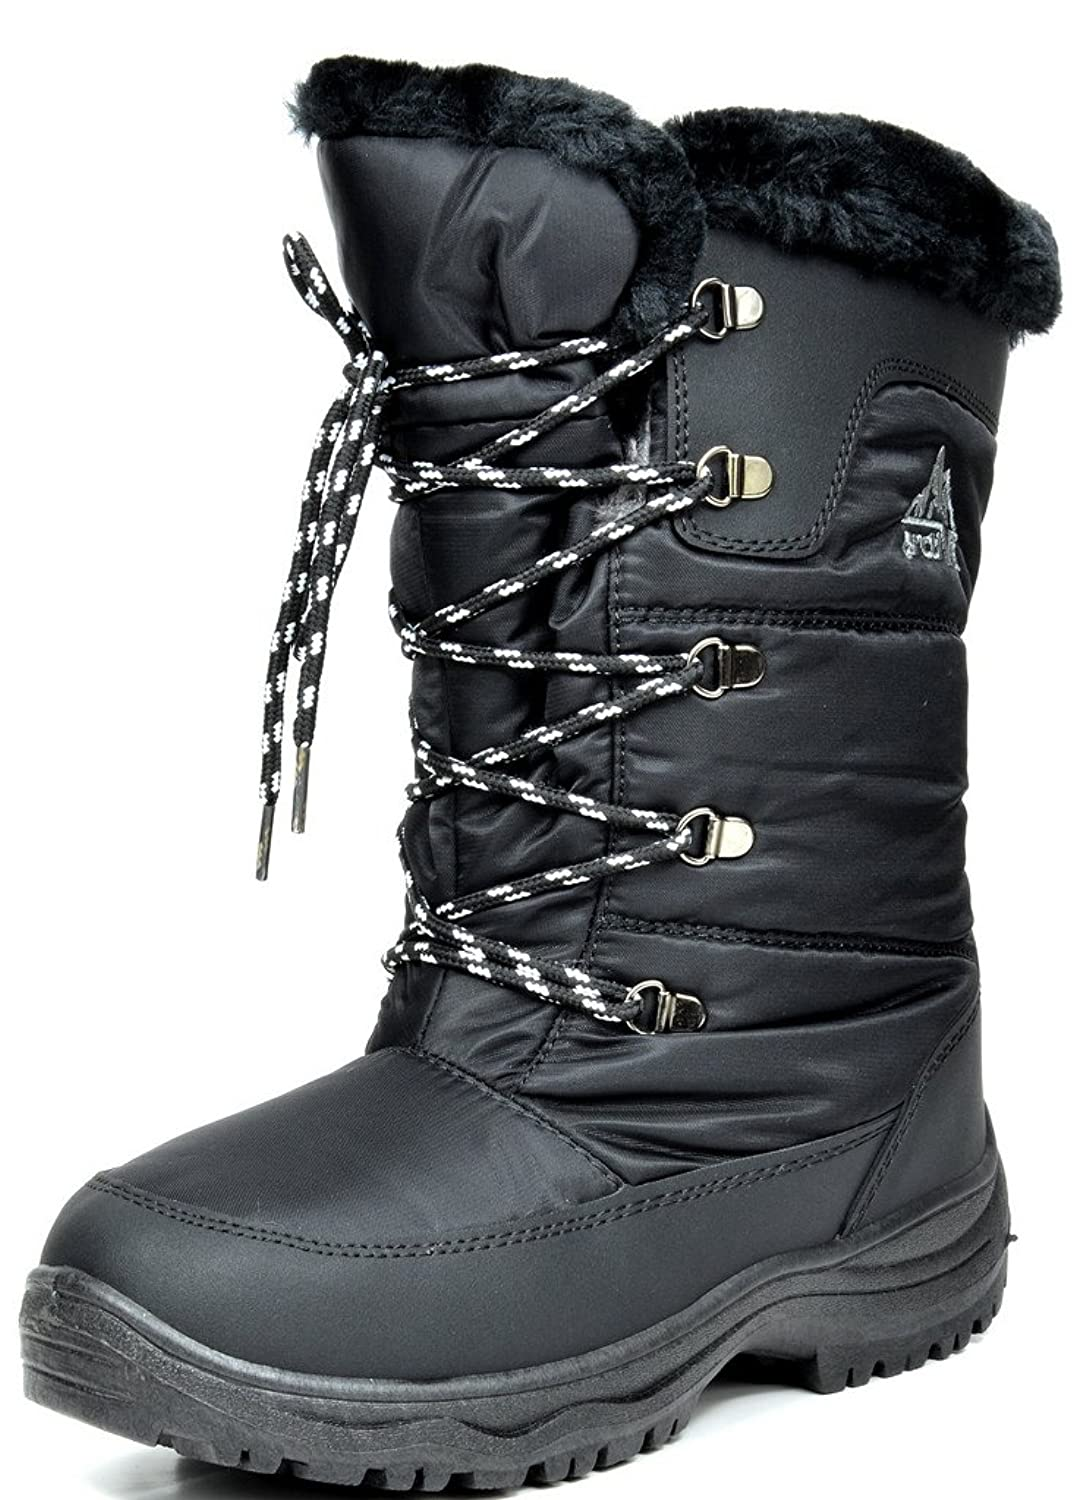 ARCTIV8 ALASKA Women's Winter Cold Weather Mid High Faux Fur Snow Skii Boots